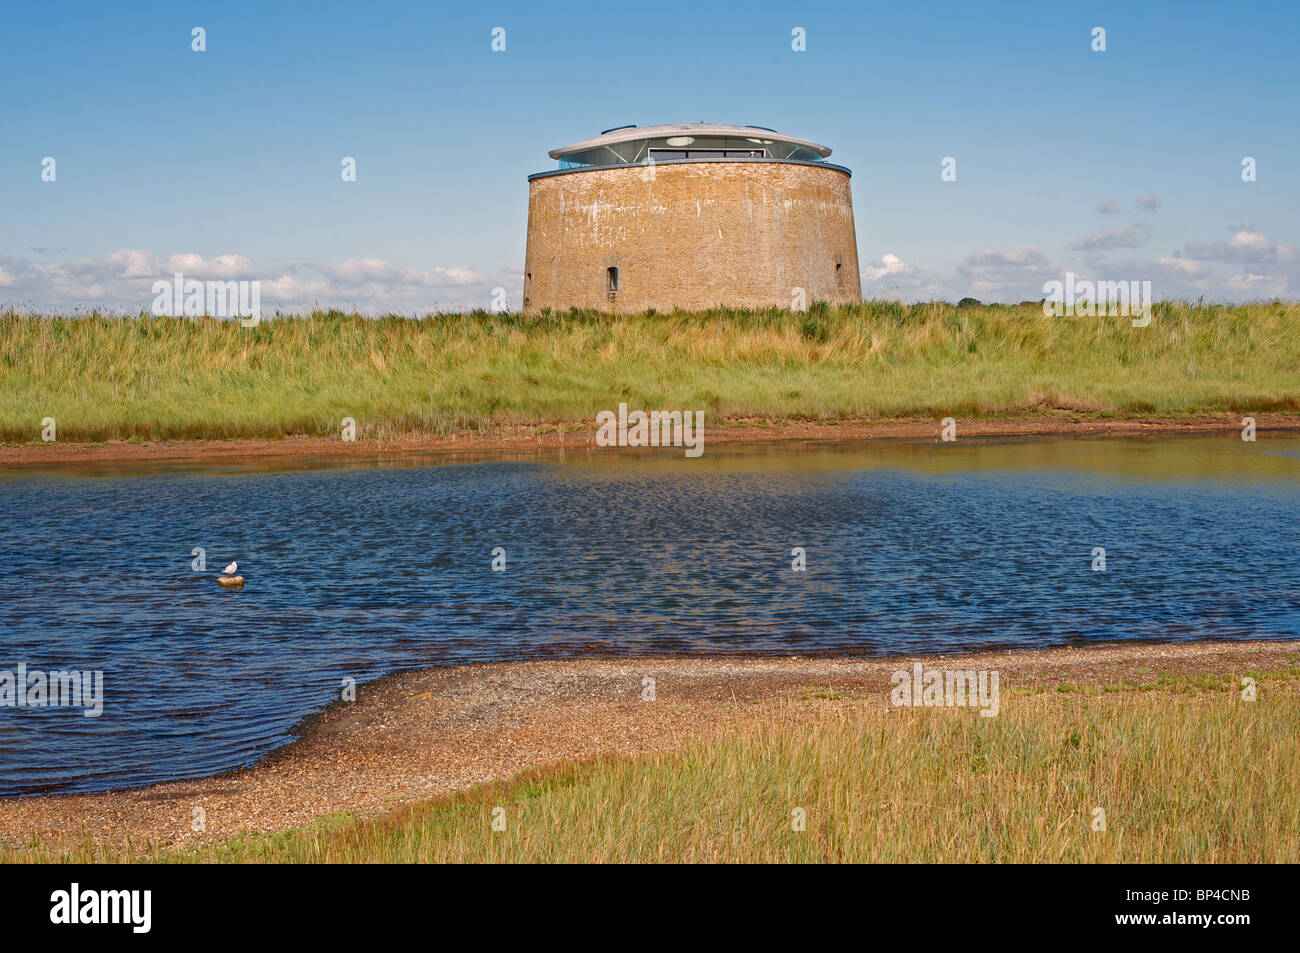 Martello tower Y converted into a residential property, Suffolk, UK. - Stock Image